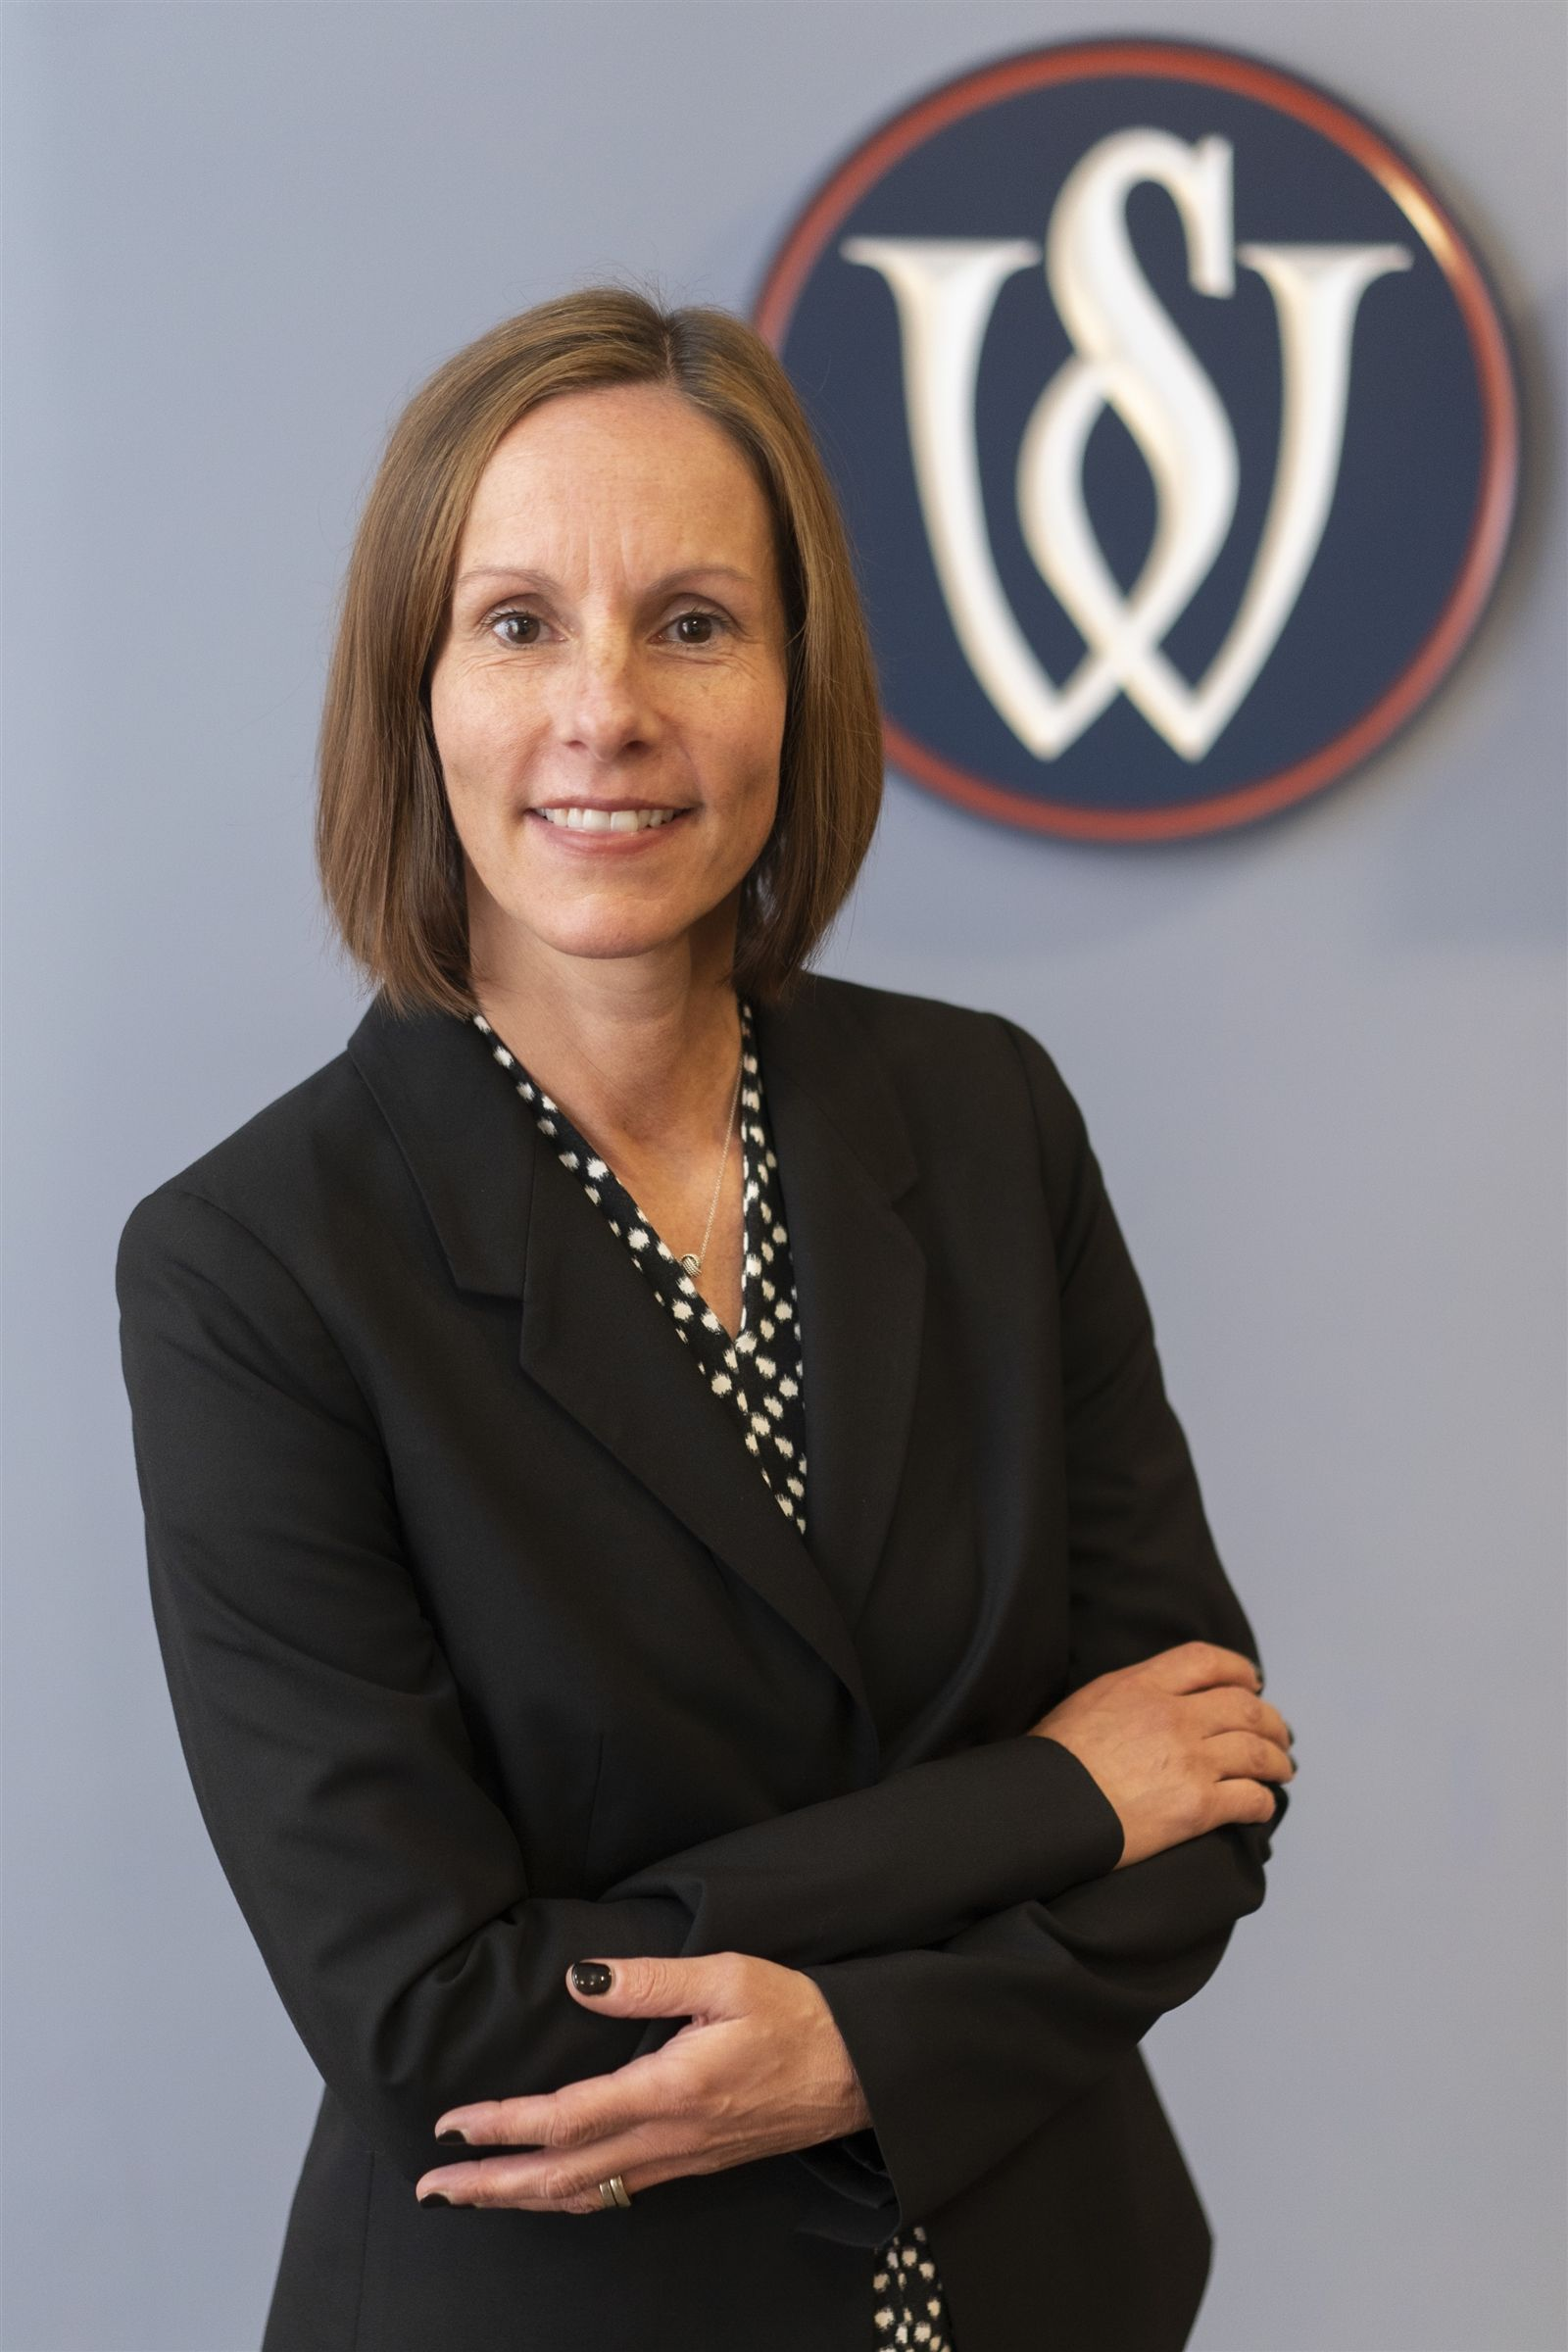 Amy L. Clemons, Head of School